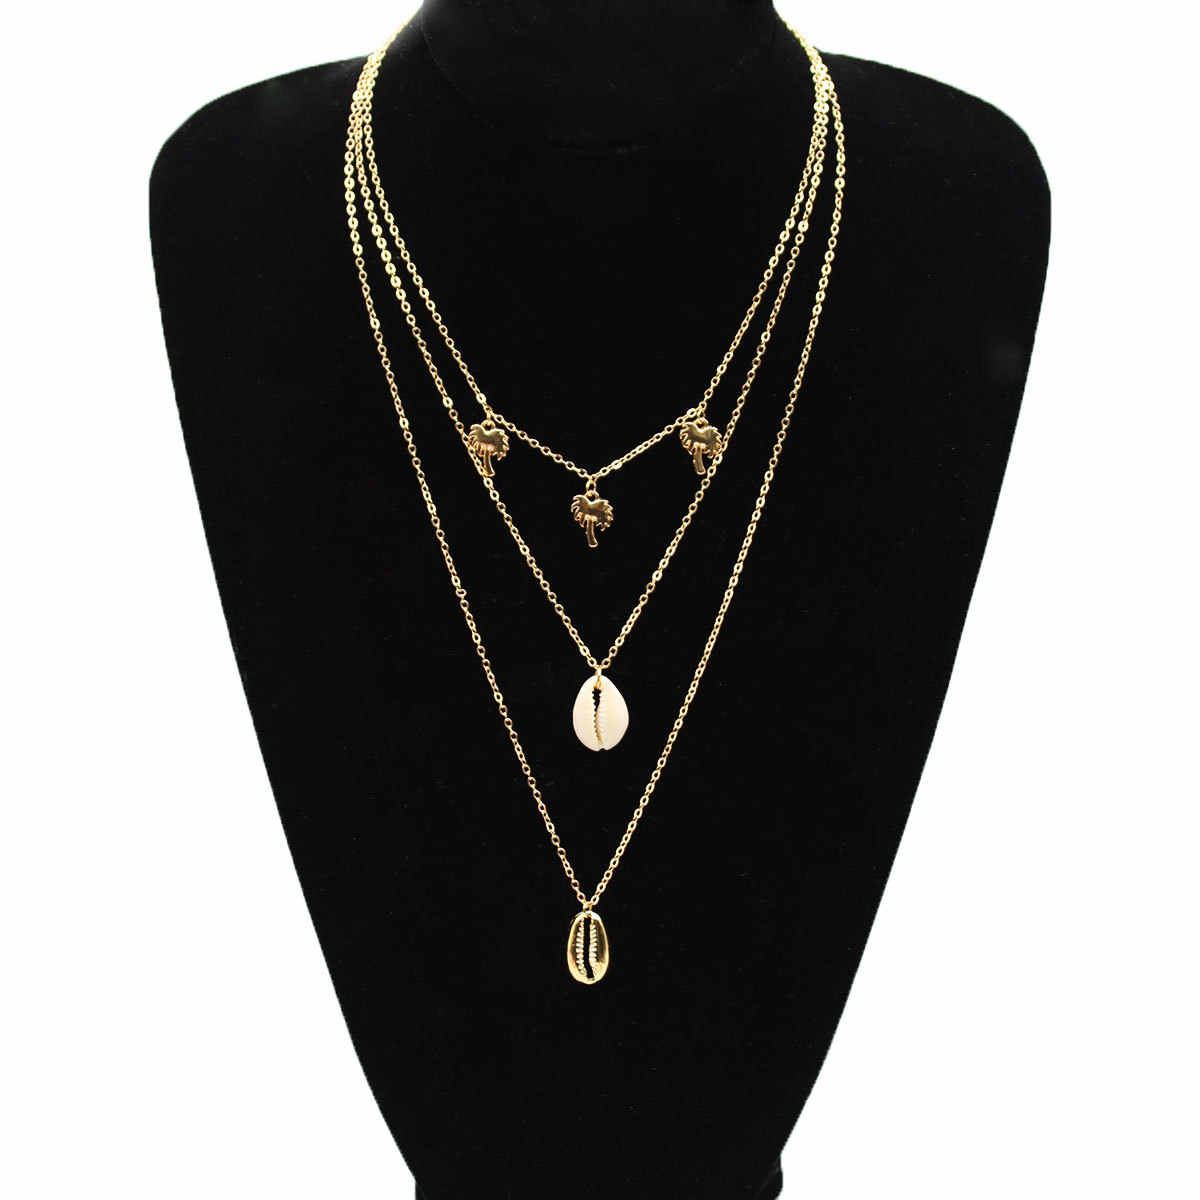 Simple Palm Tree Natural Shell Multilayer Necklace Pendants Long Clavicle Choker Chain Necklace Women Jewelry